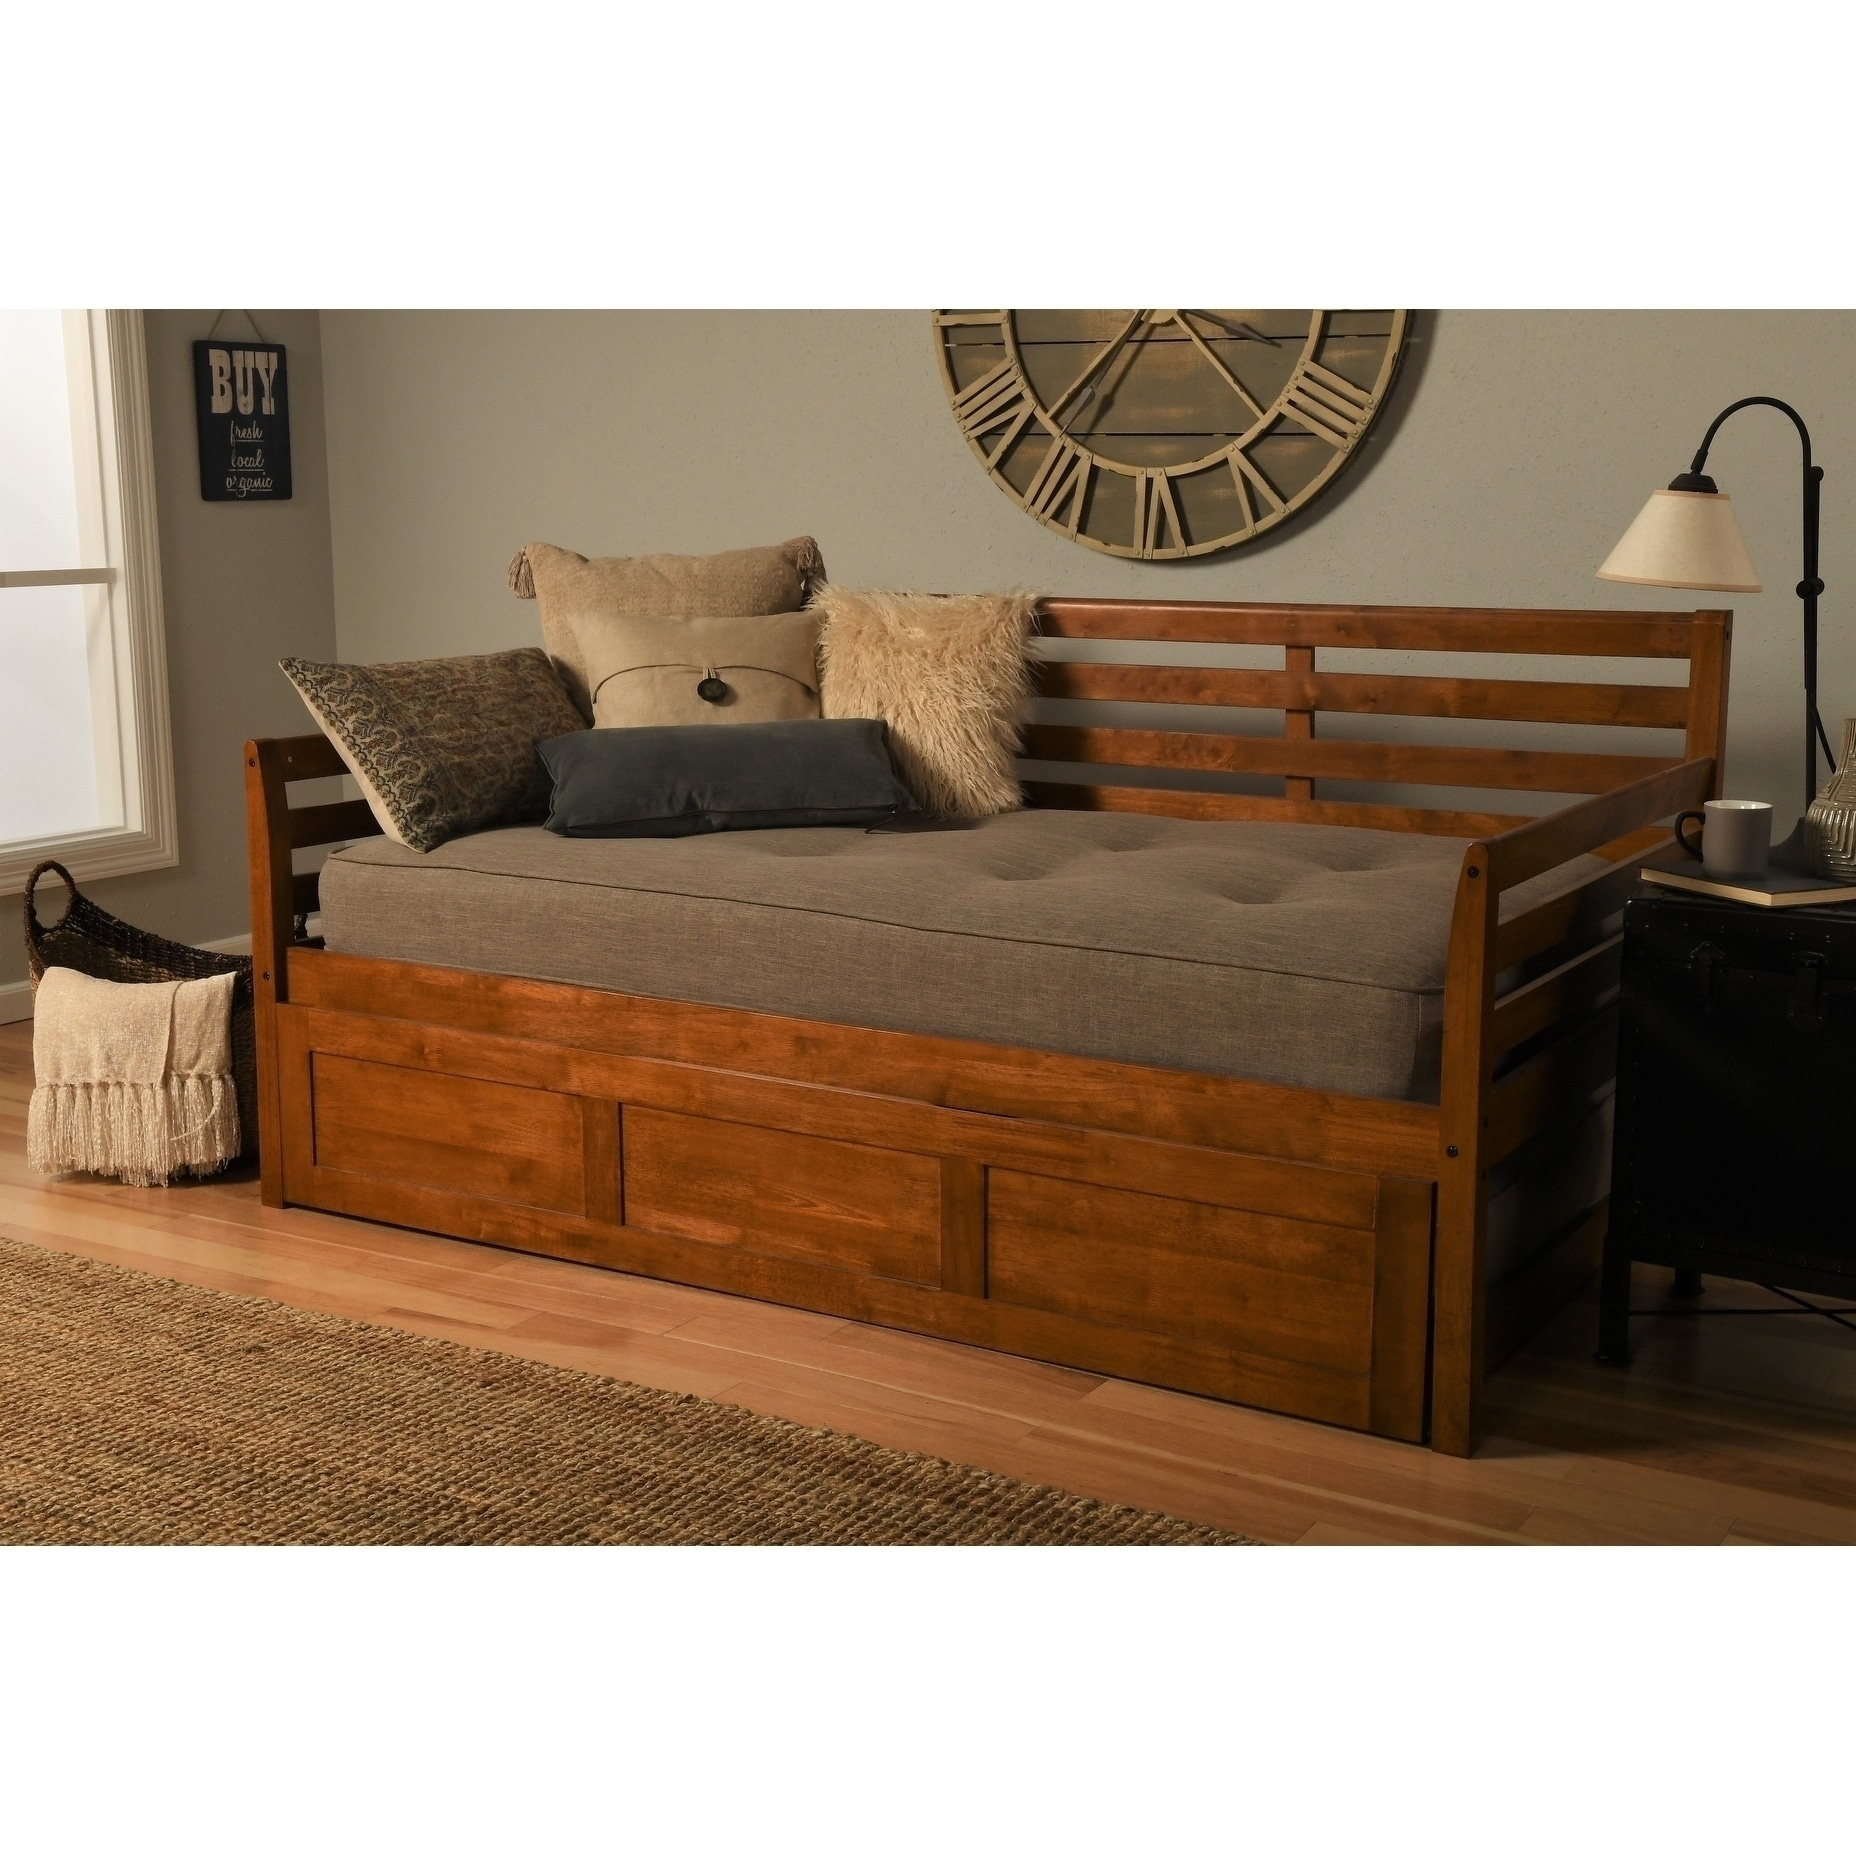 Local Bed Shops Buy Daybed Online At Overstock Our Best Bedroom Furniture Deals